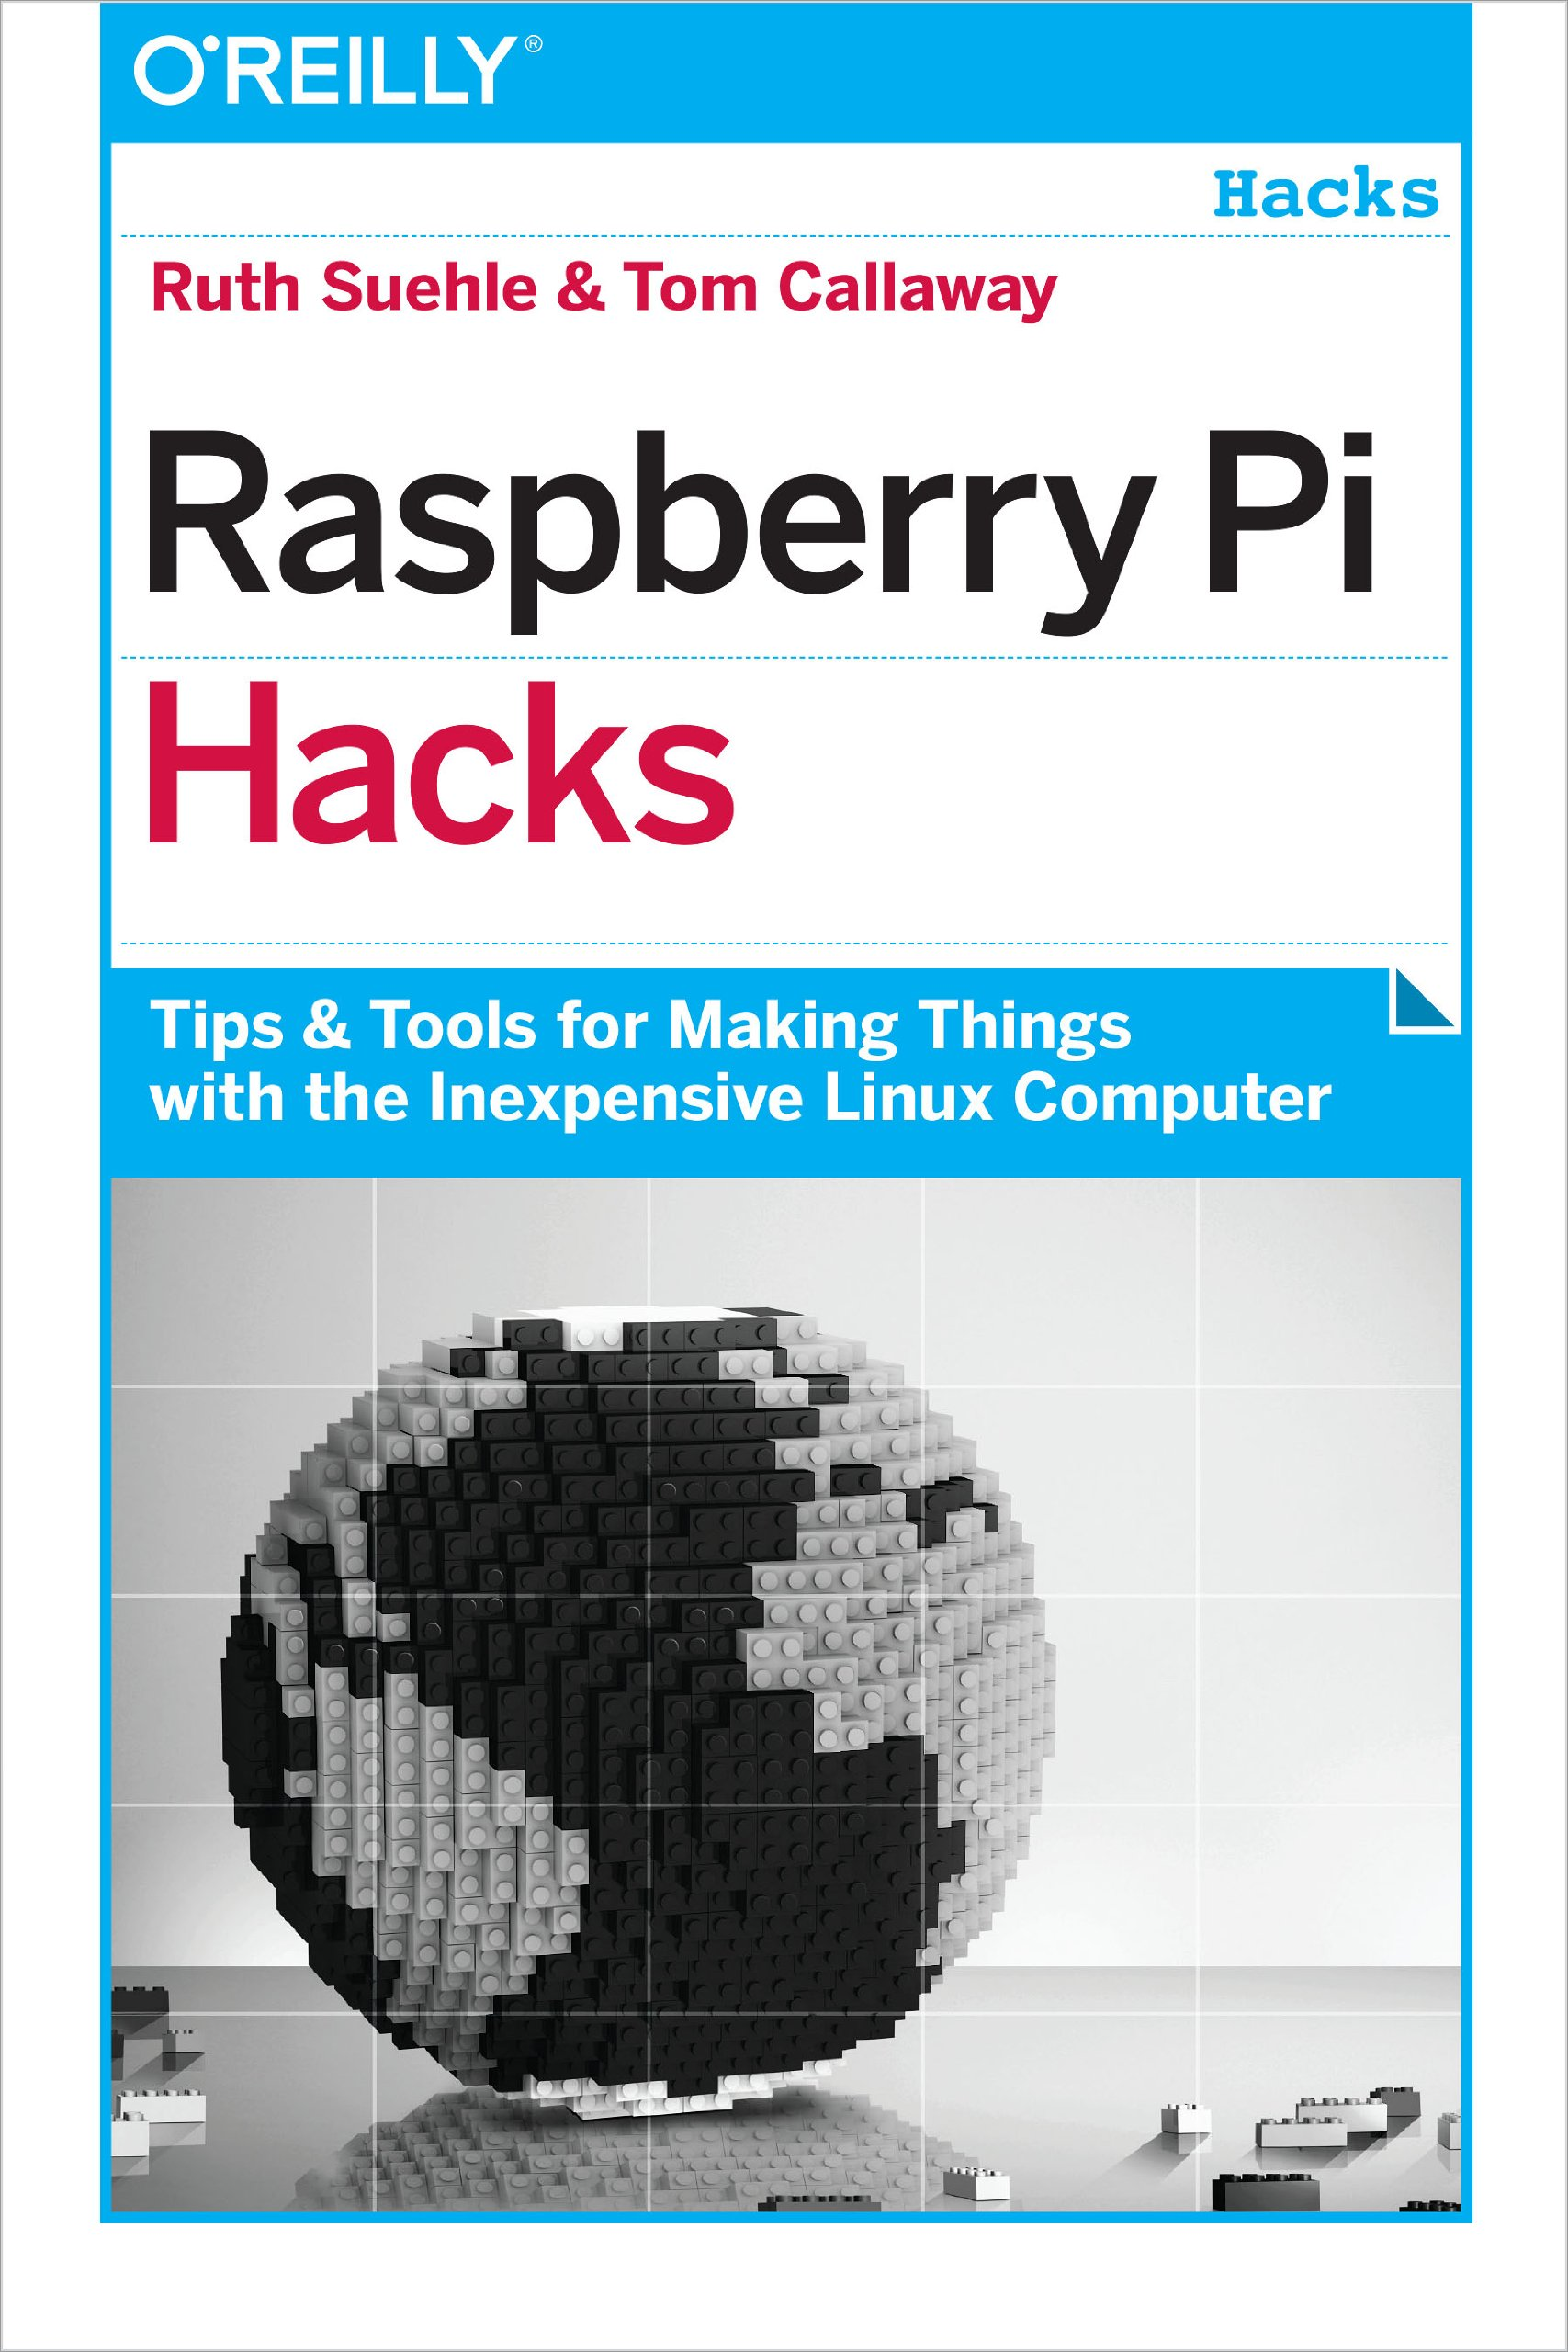 Raspberry Pi hacks [electronic resource]